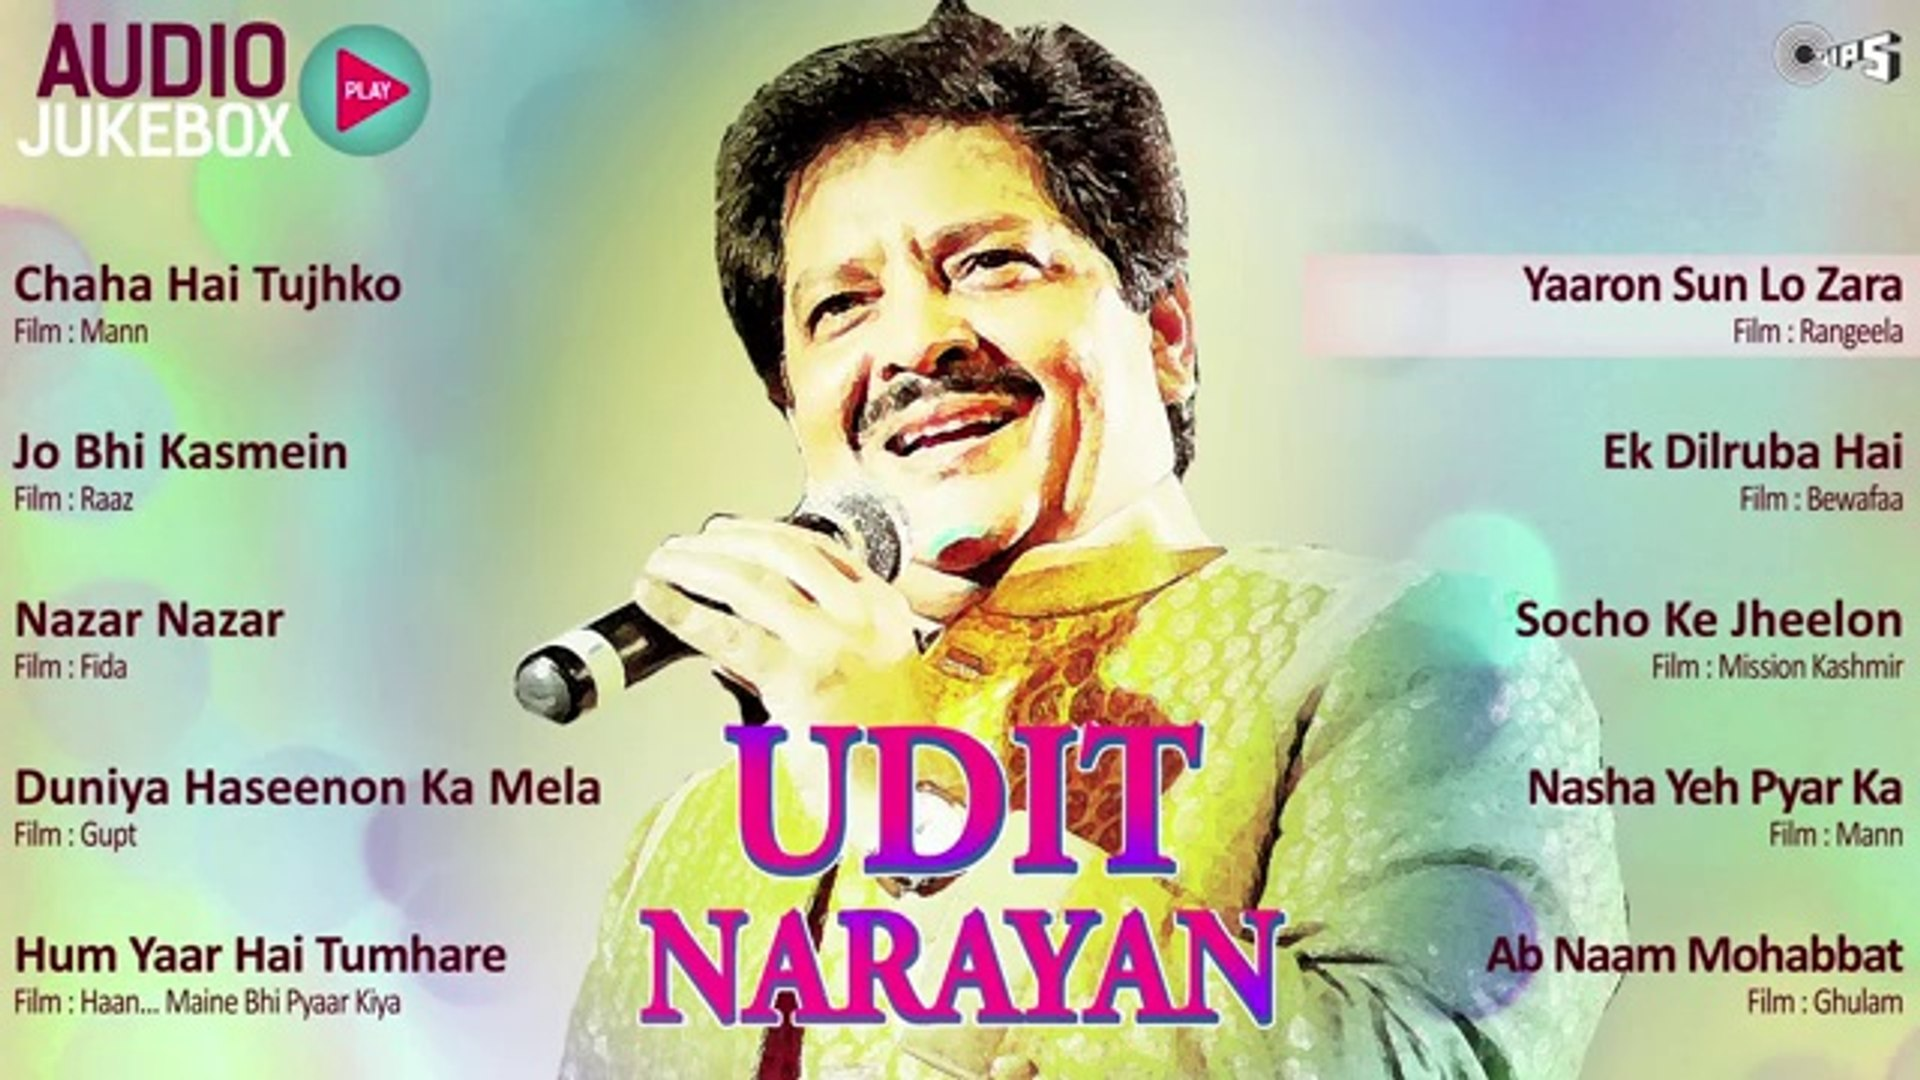 Best of Udit Narayan - Full Songs Audio Jukebox - Non Stop